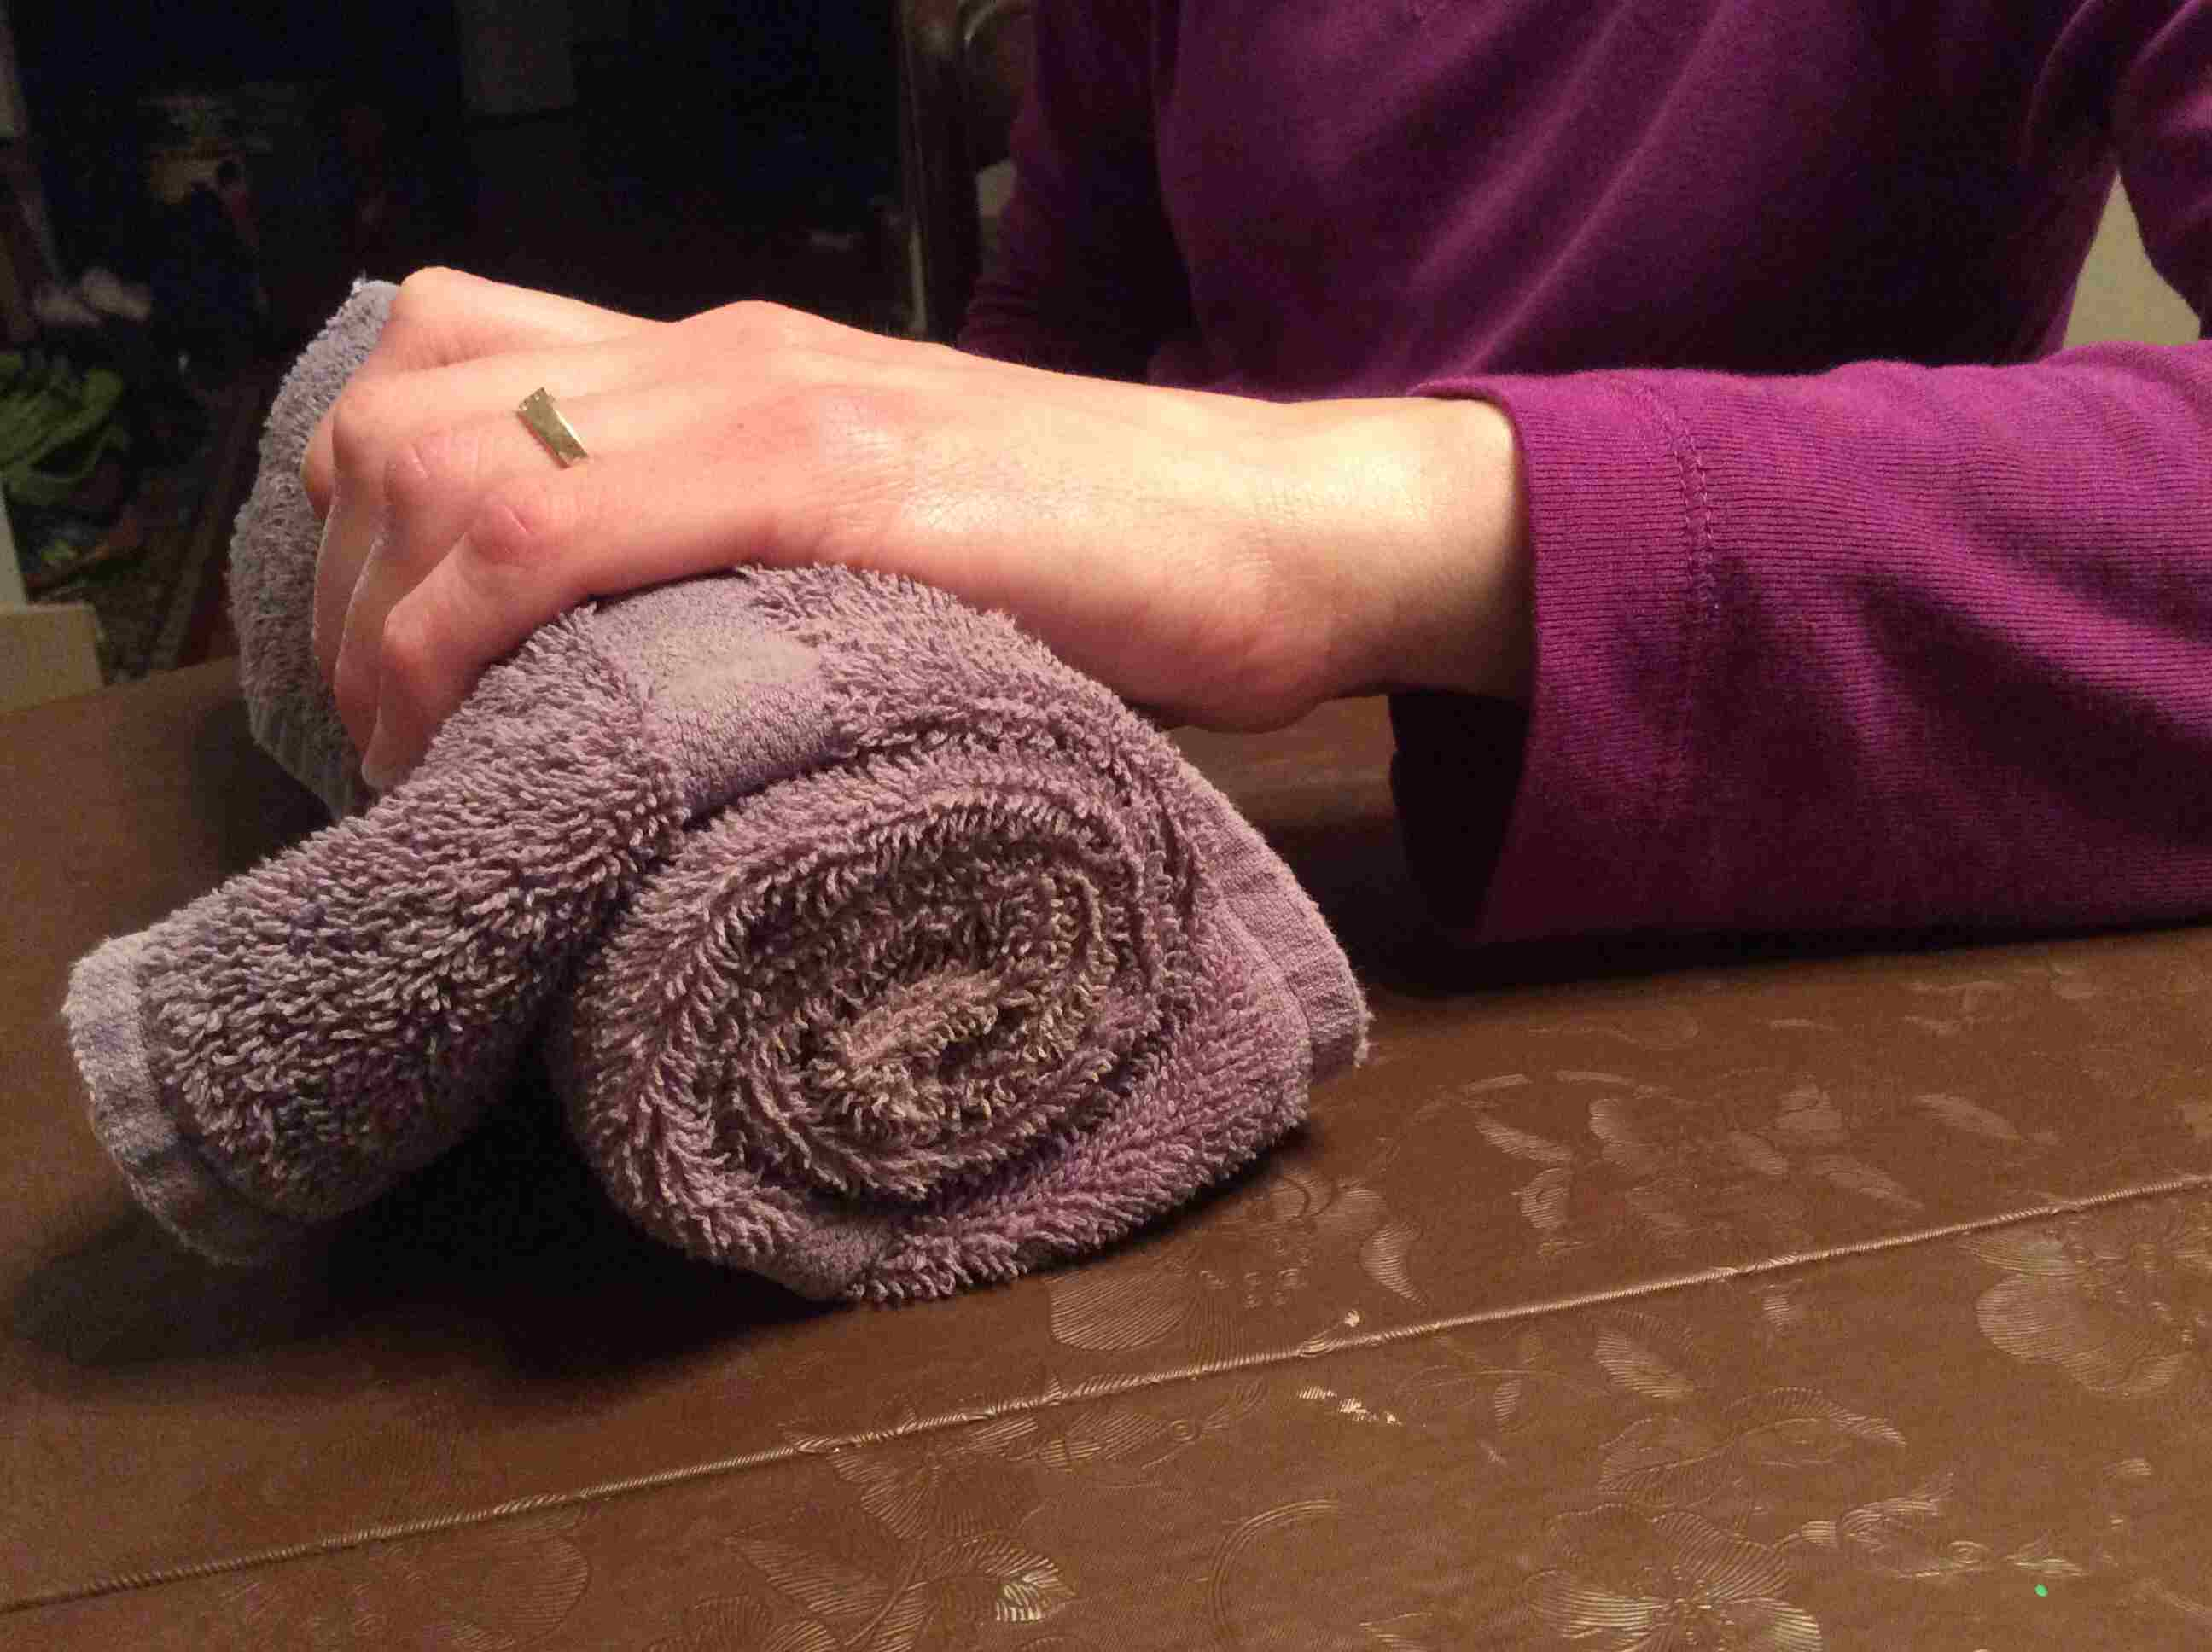 Picture of the towel handgrip exercise.